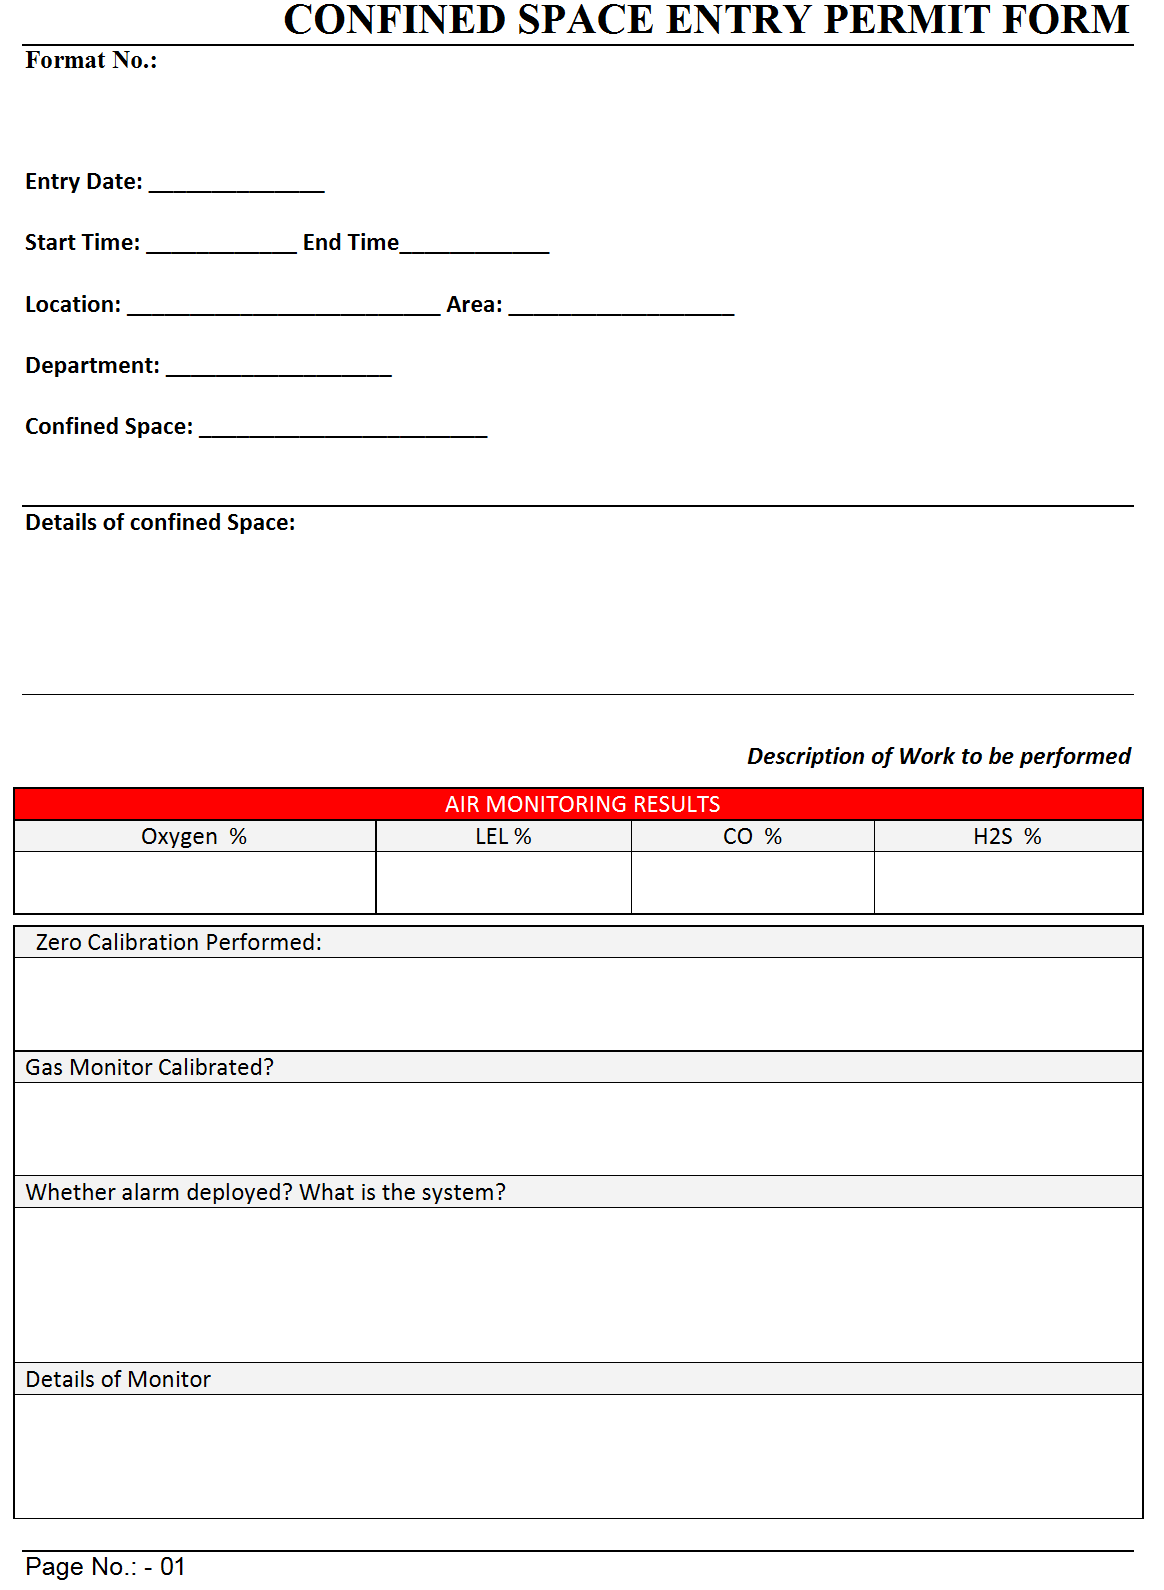 Confined Space Entry Permit Form -